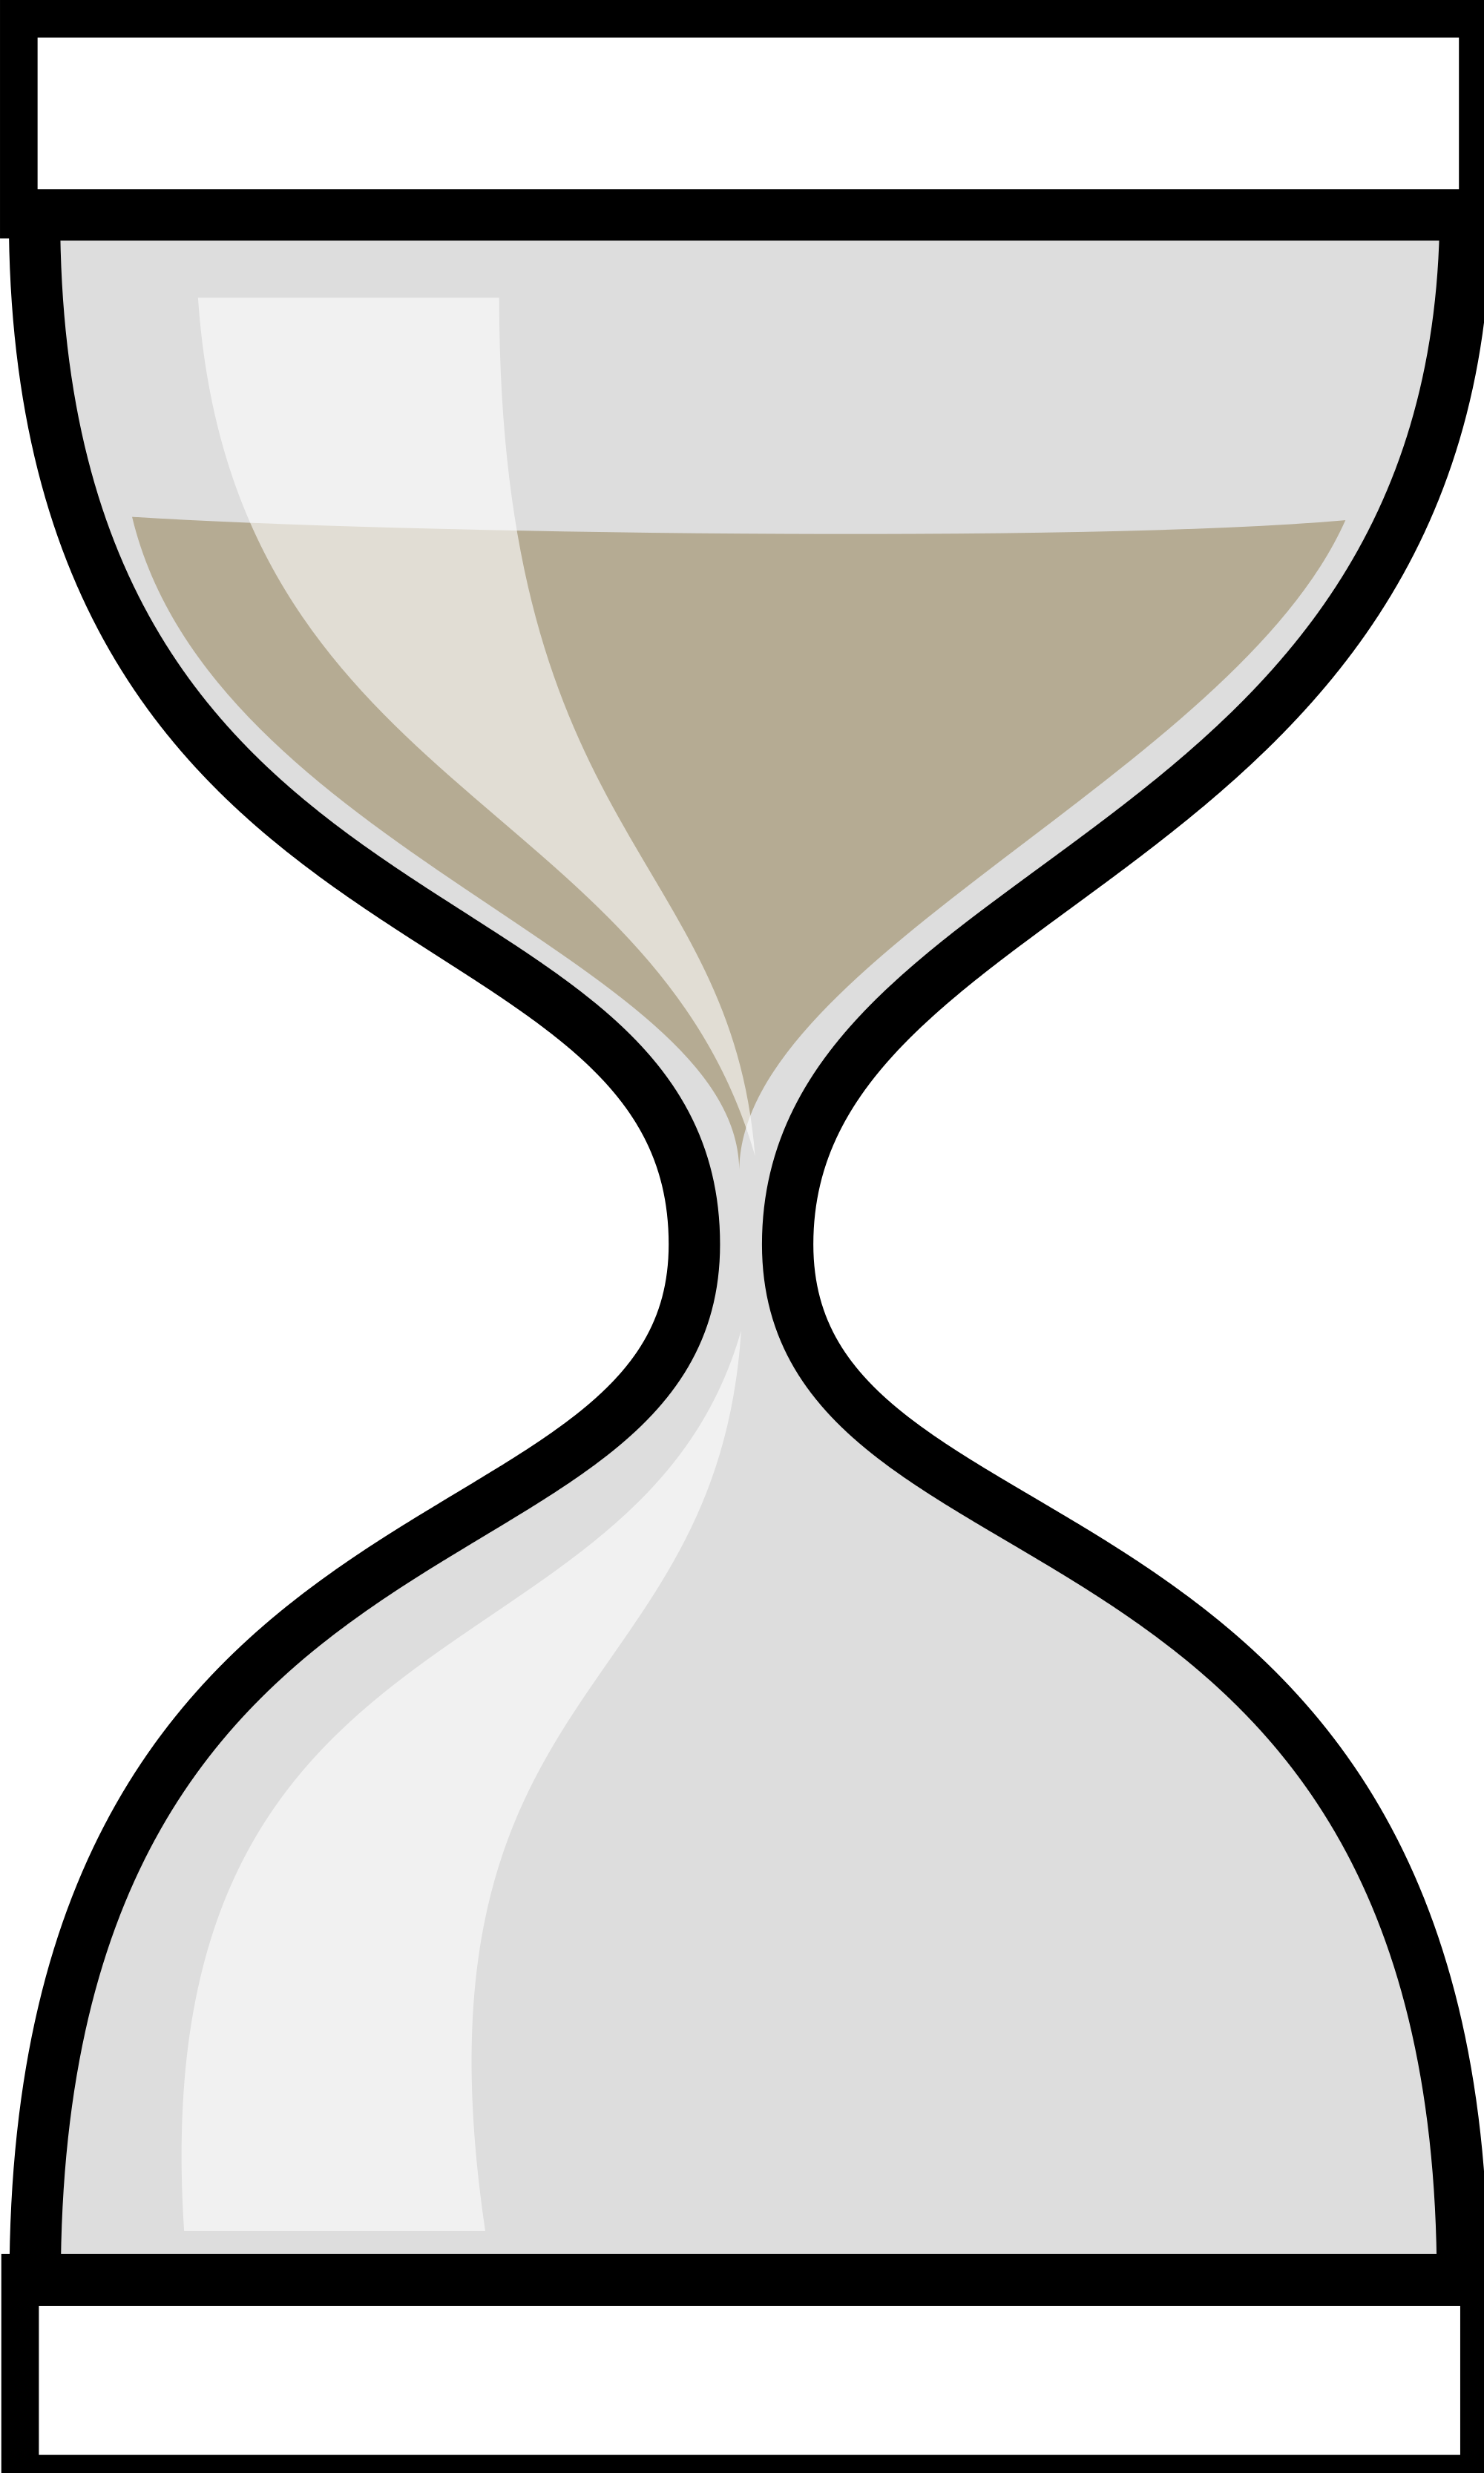 hourglass clipart svg